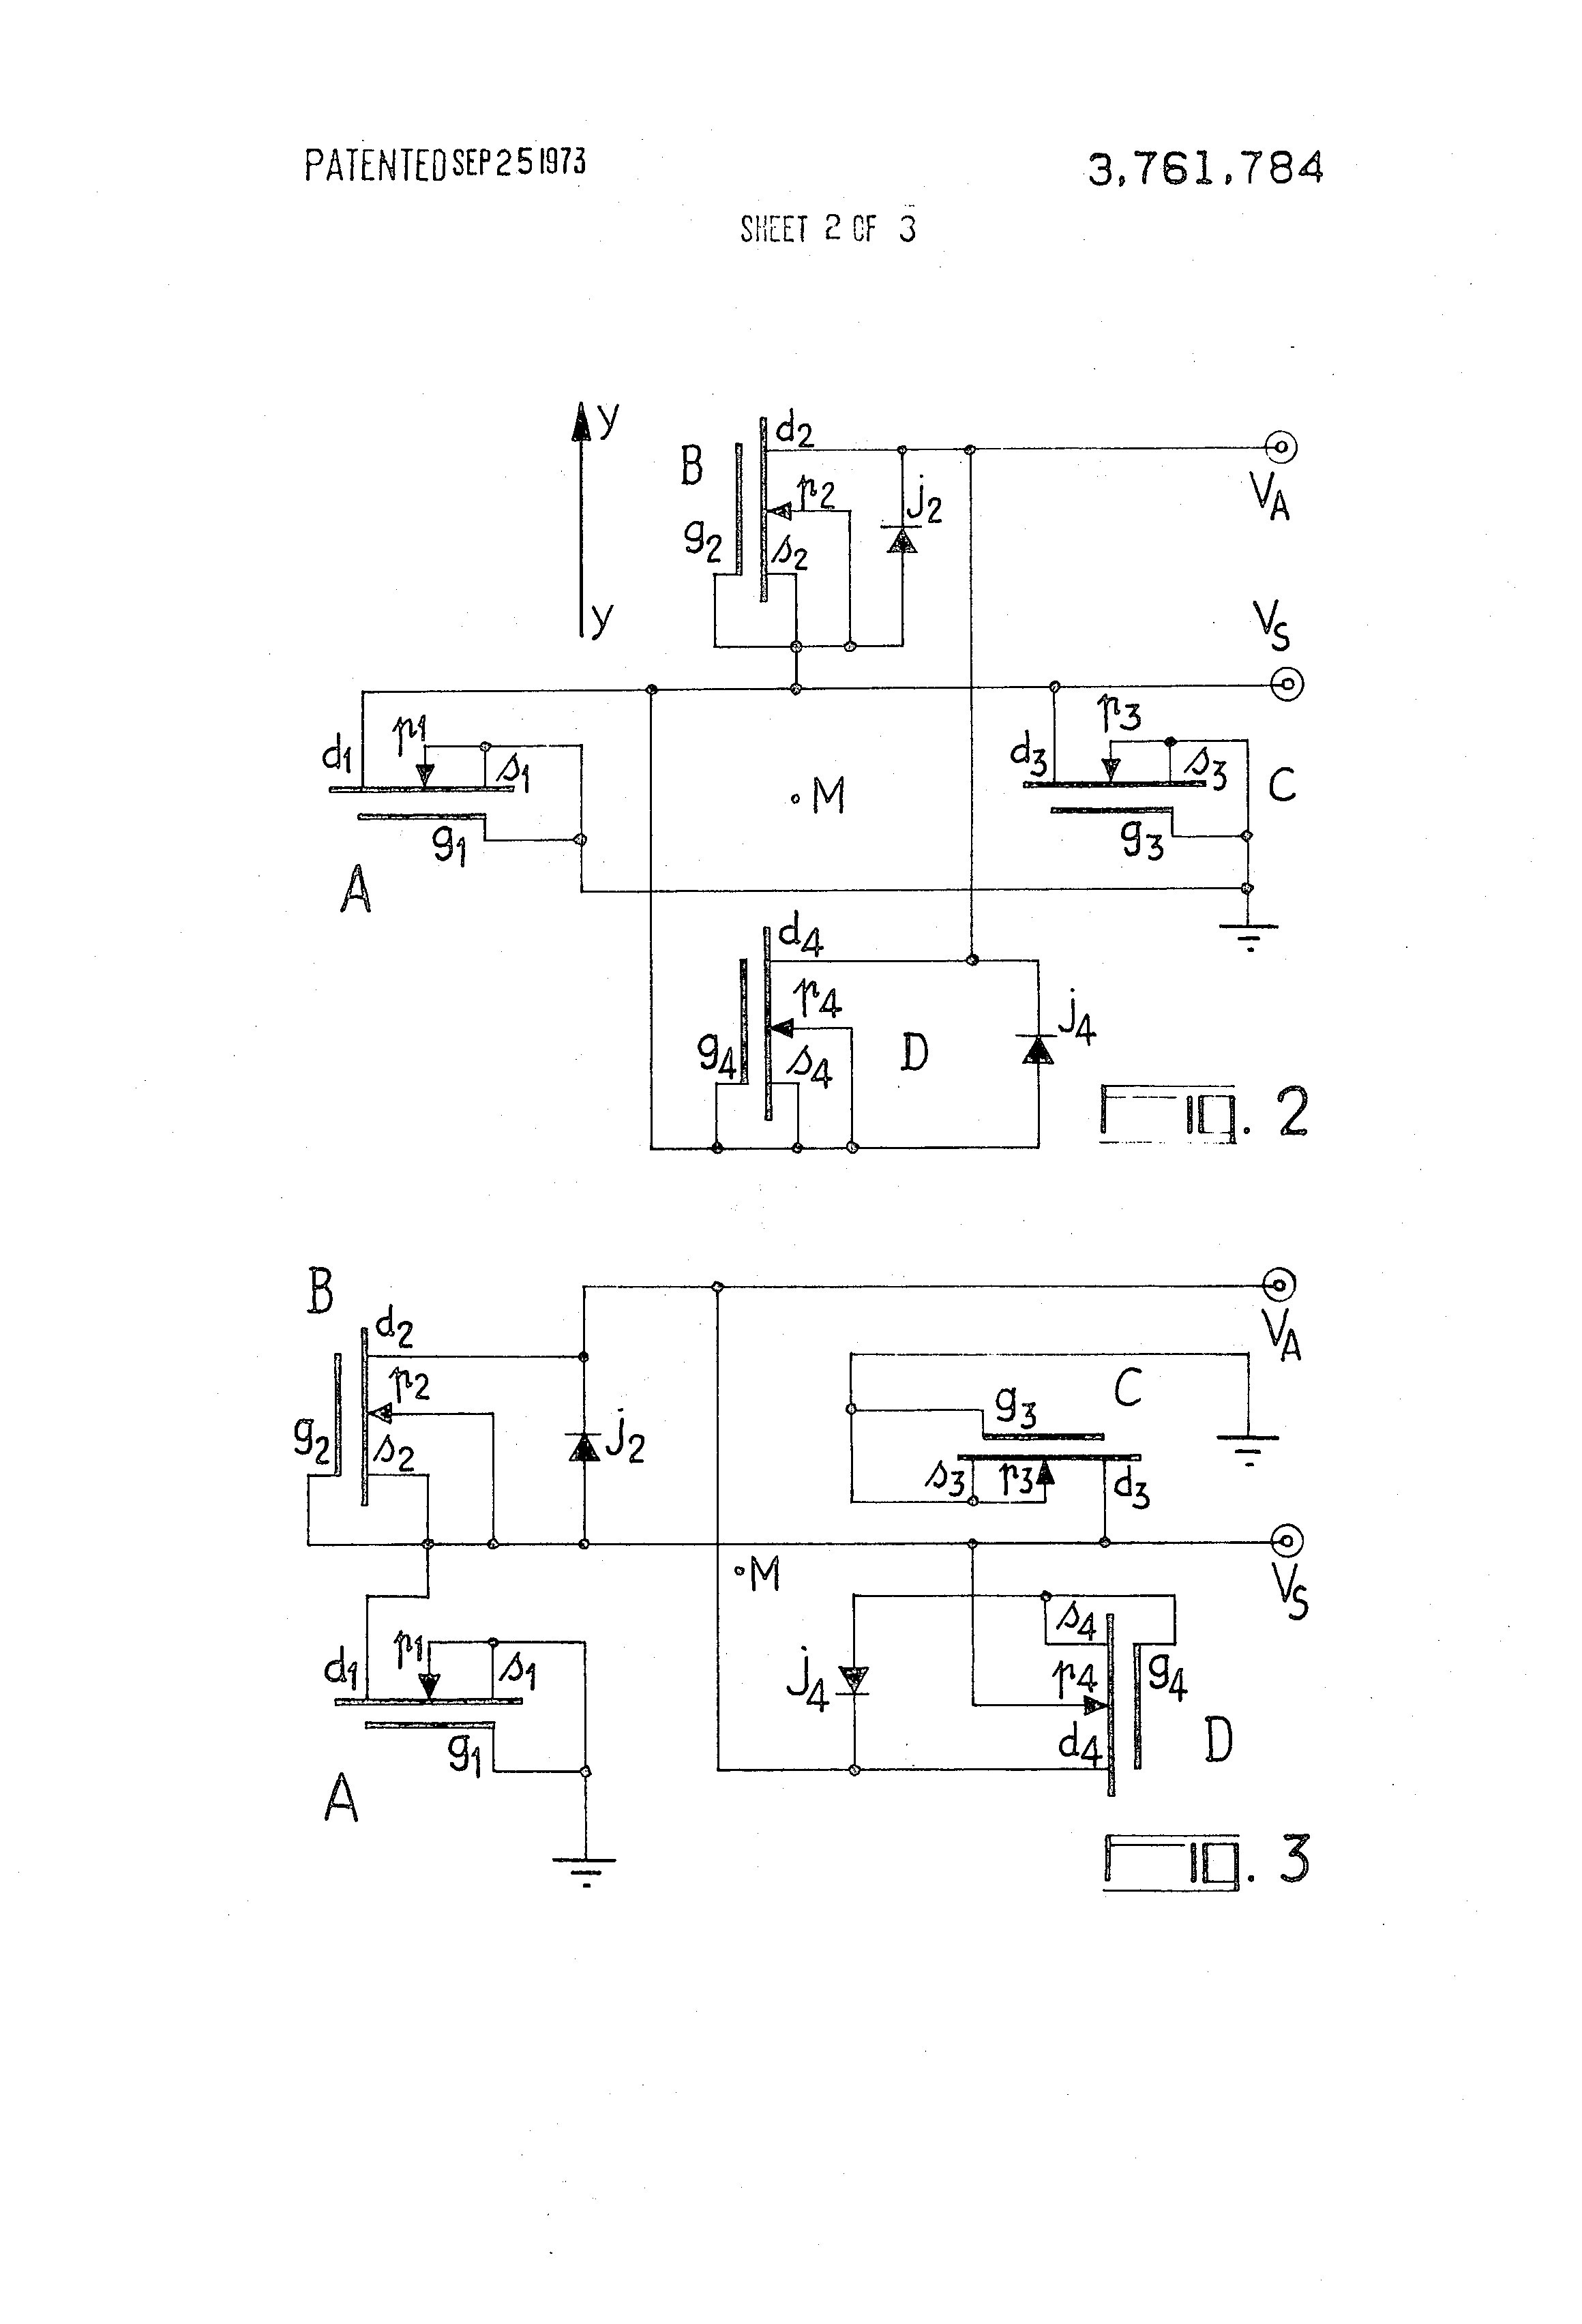 strain gauge wiring diagram wire plug load cell circuit image